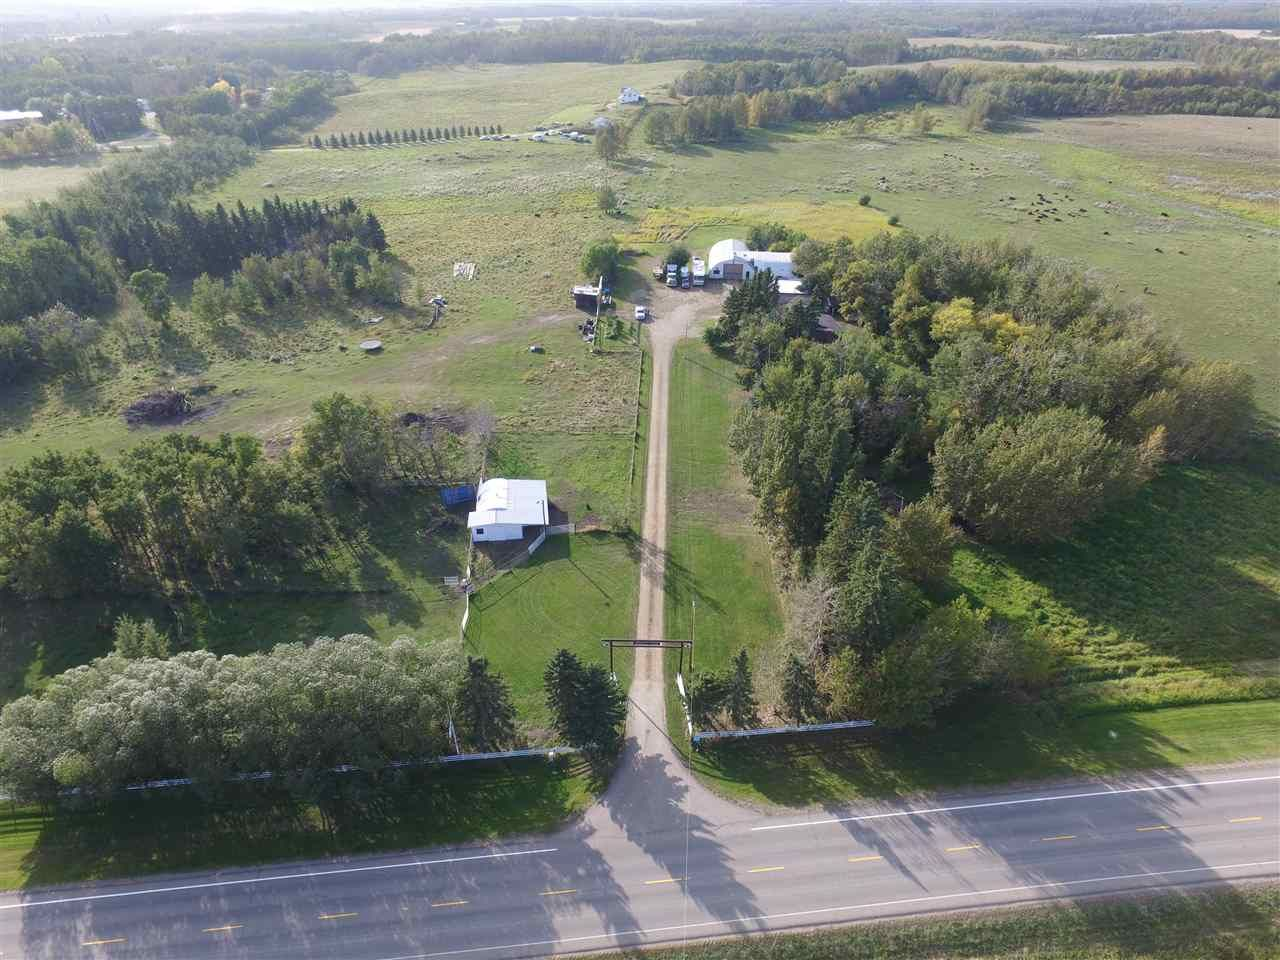 Photo 20: Photos: 472050A Hwy 814: Rural Wetaskiwin County House for sale : MLS®# E4213442